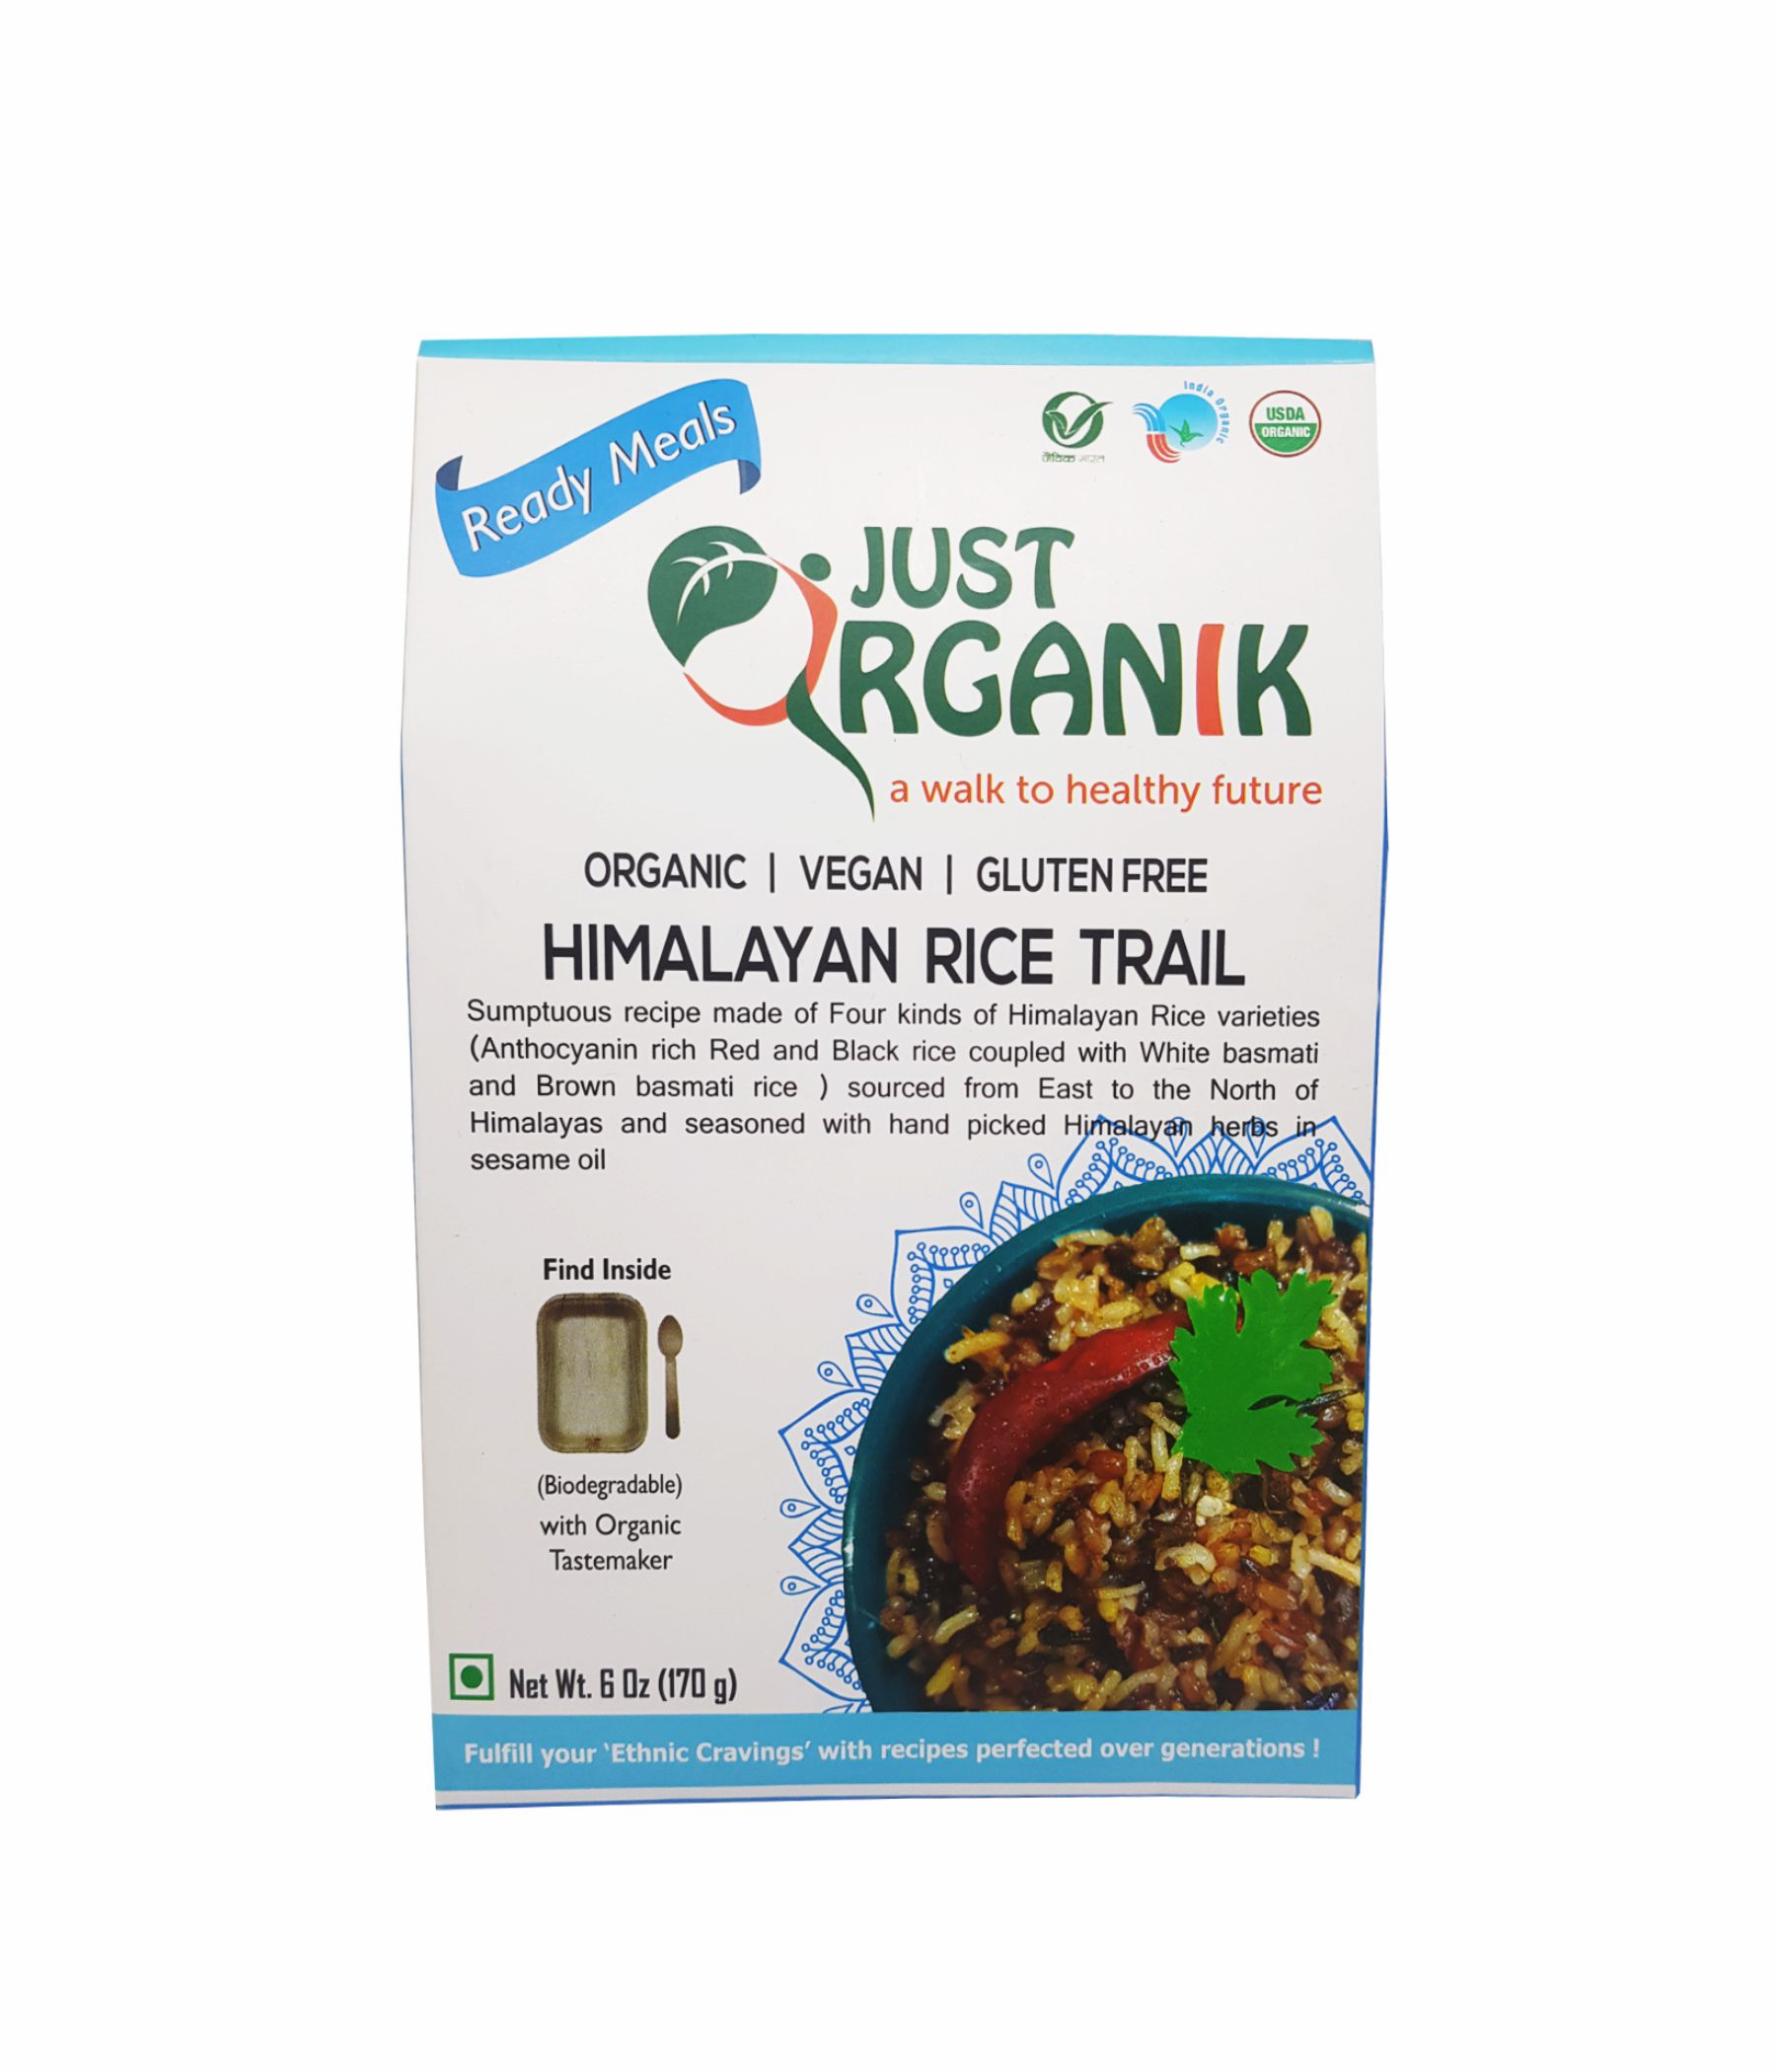 JUST ORGANIK READY TO EAT MEALS - HIMALAYAN RICE TRAIL